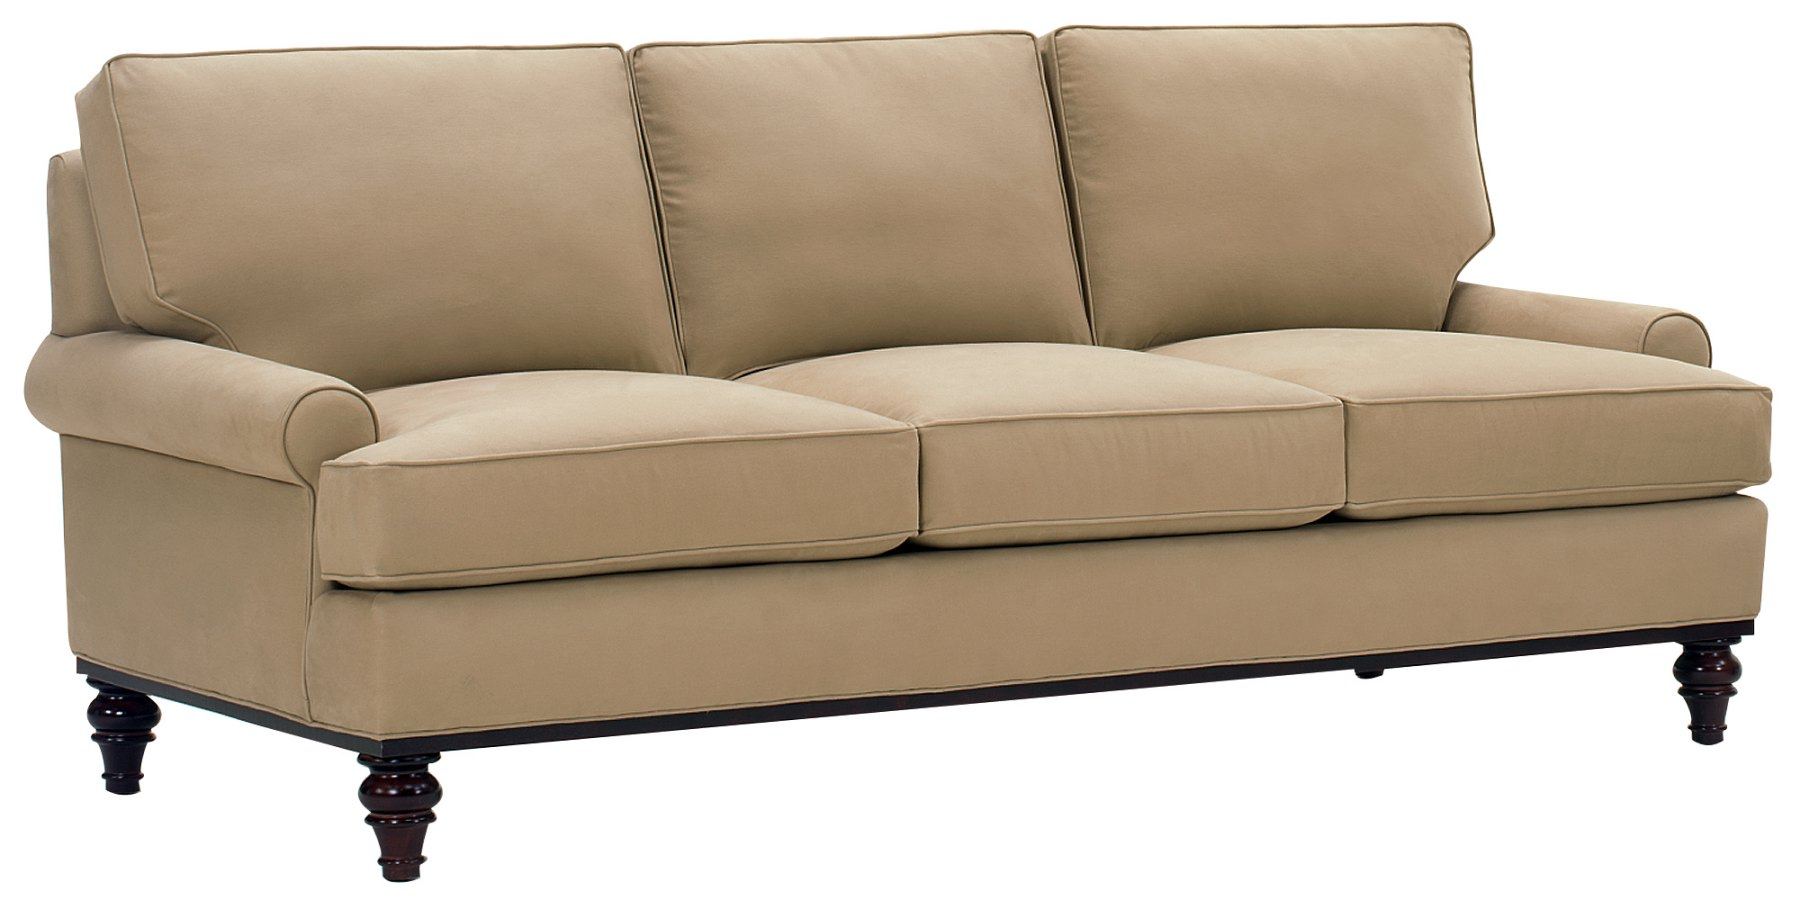 Fabric Couches & Upholstered Sofas Club Furniture